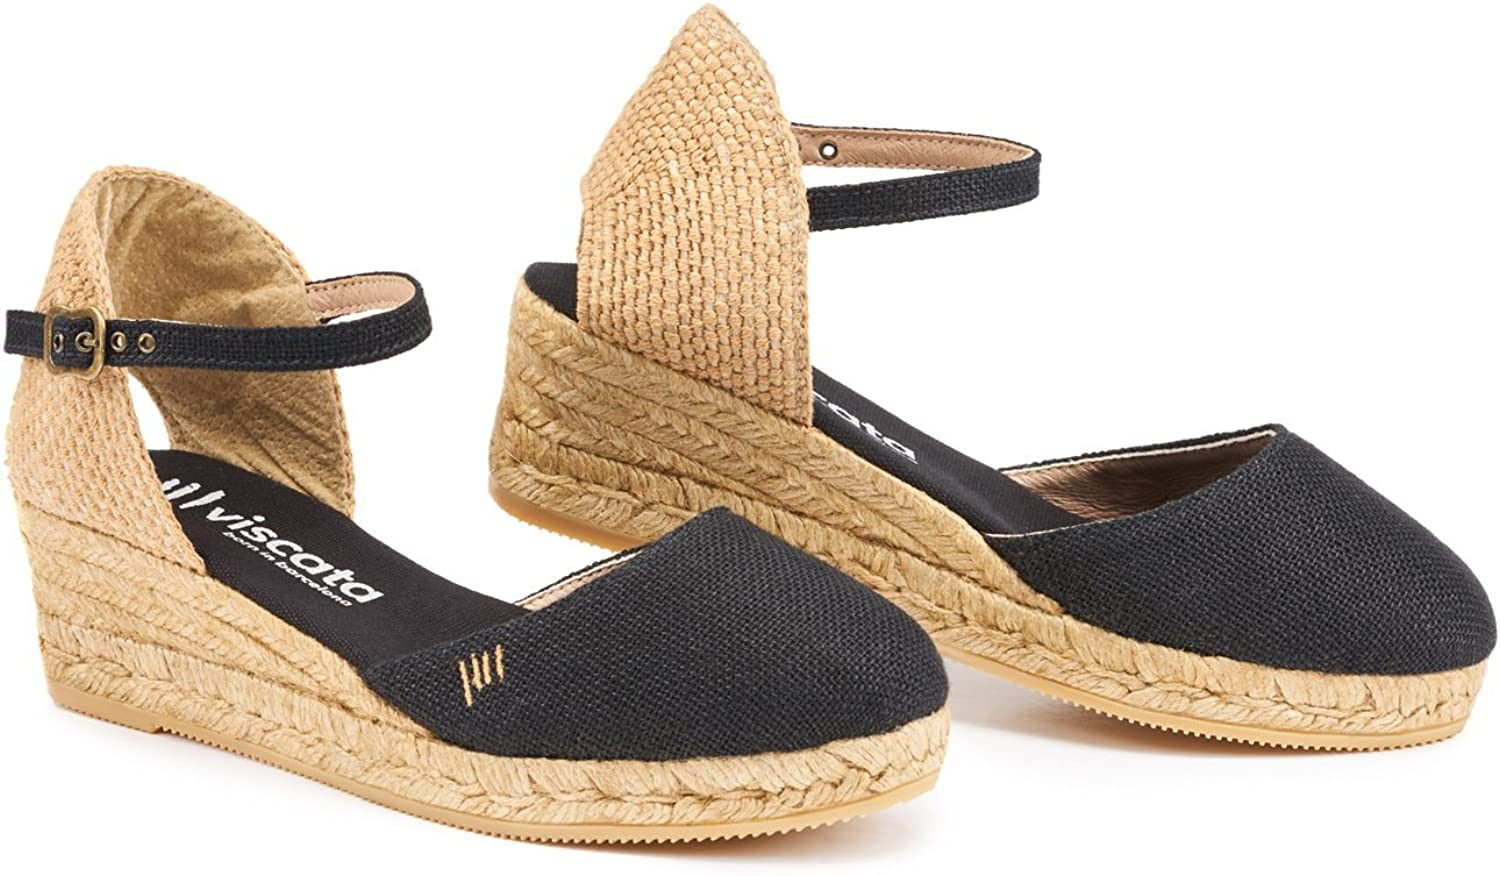 VISCATA Handmade in Spain Canet Linen 2  Wedge, Ankle-Strap, Closed Toe, Classic Espadrilles Heel